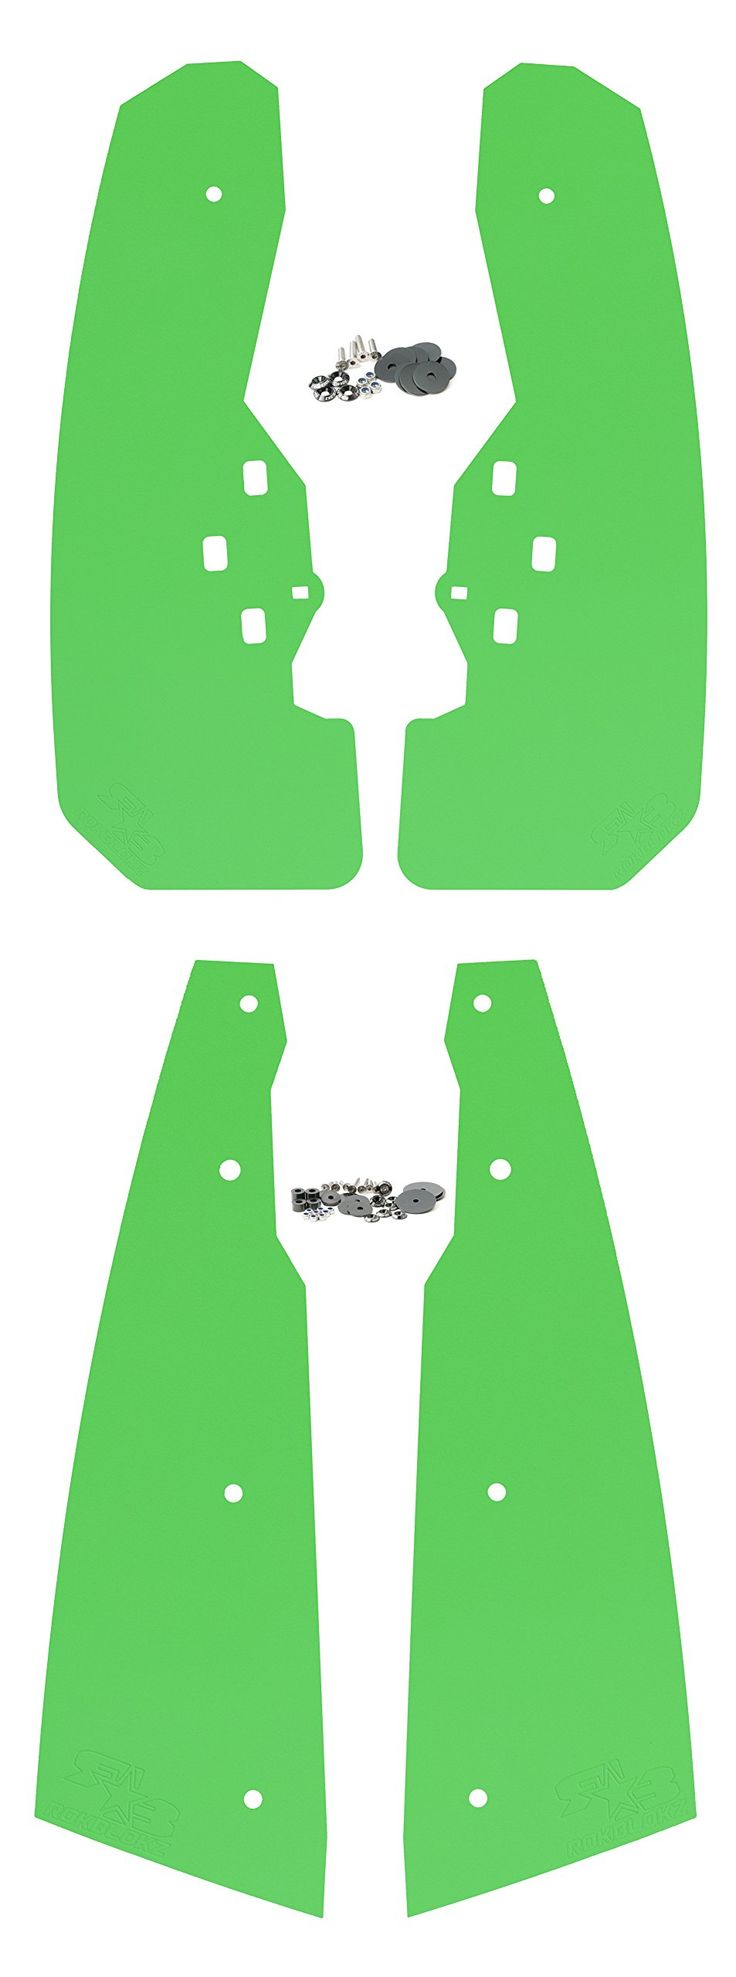 Polaris RZR XP 1000 Mud Flaps by RokBlokz - FULL SET of 4 - Front AND Rear - RZR XP 4 1000 Fender Extensions - Rigid Design Better than OEM Deflectors - Highly Rated UTV Mud Guards (Lime Green)